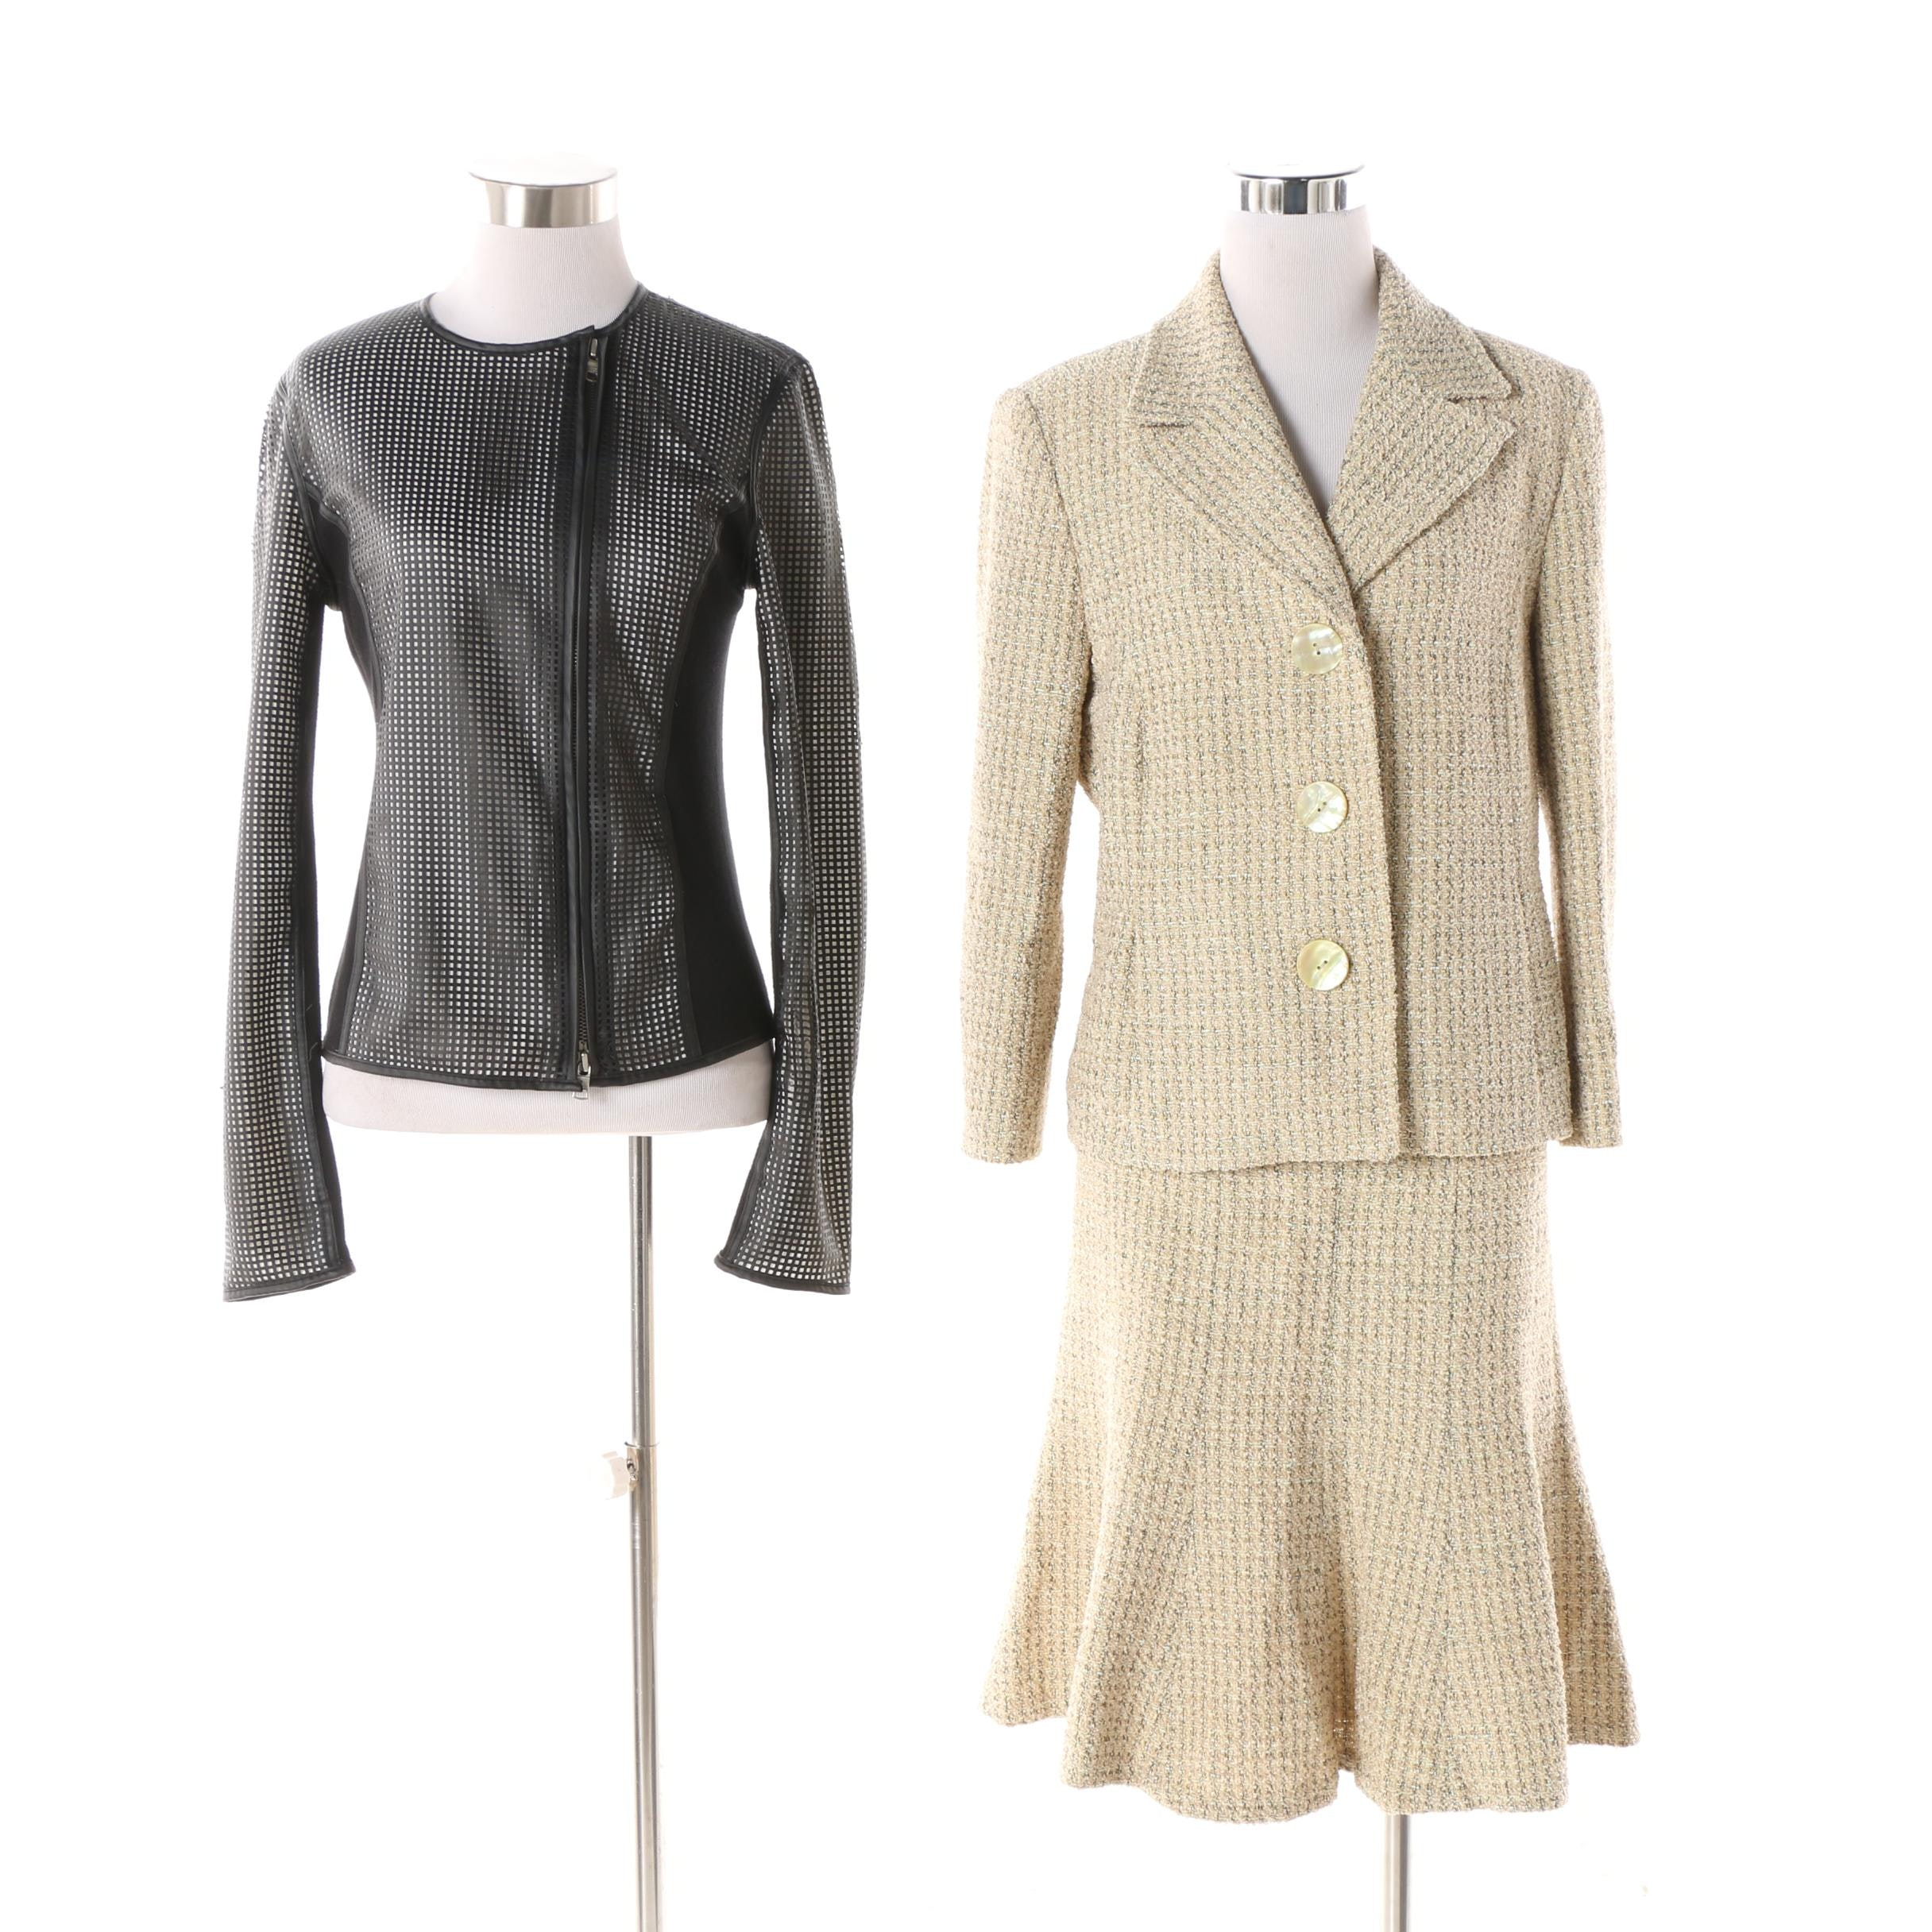 Women's Armani Exchange Carey Jacket and Georges Rech Skirt Suit